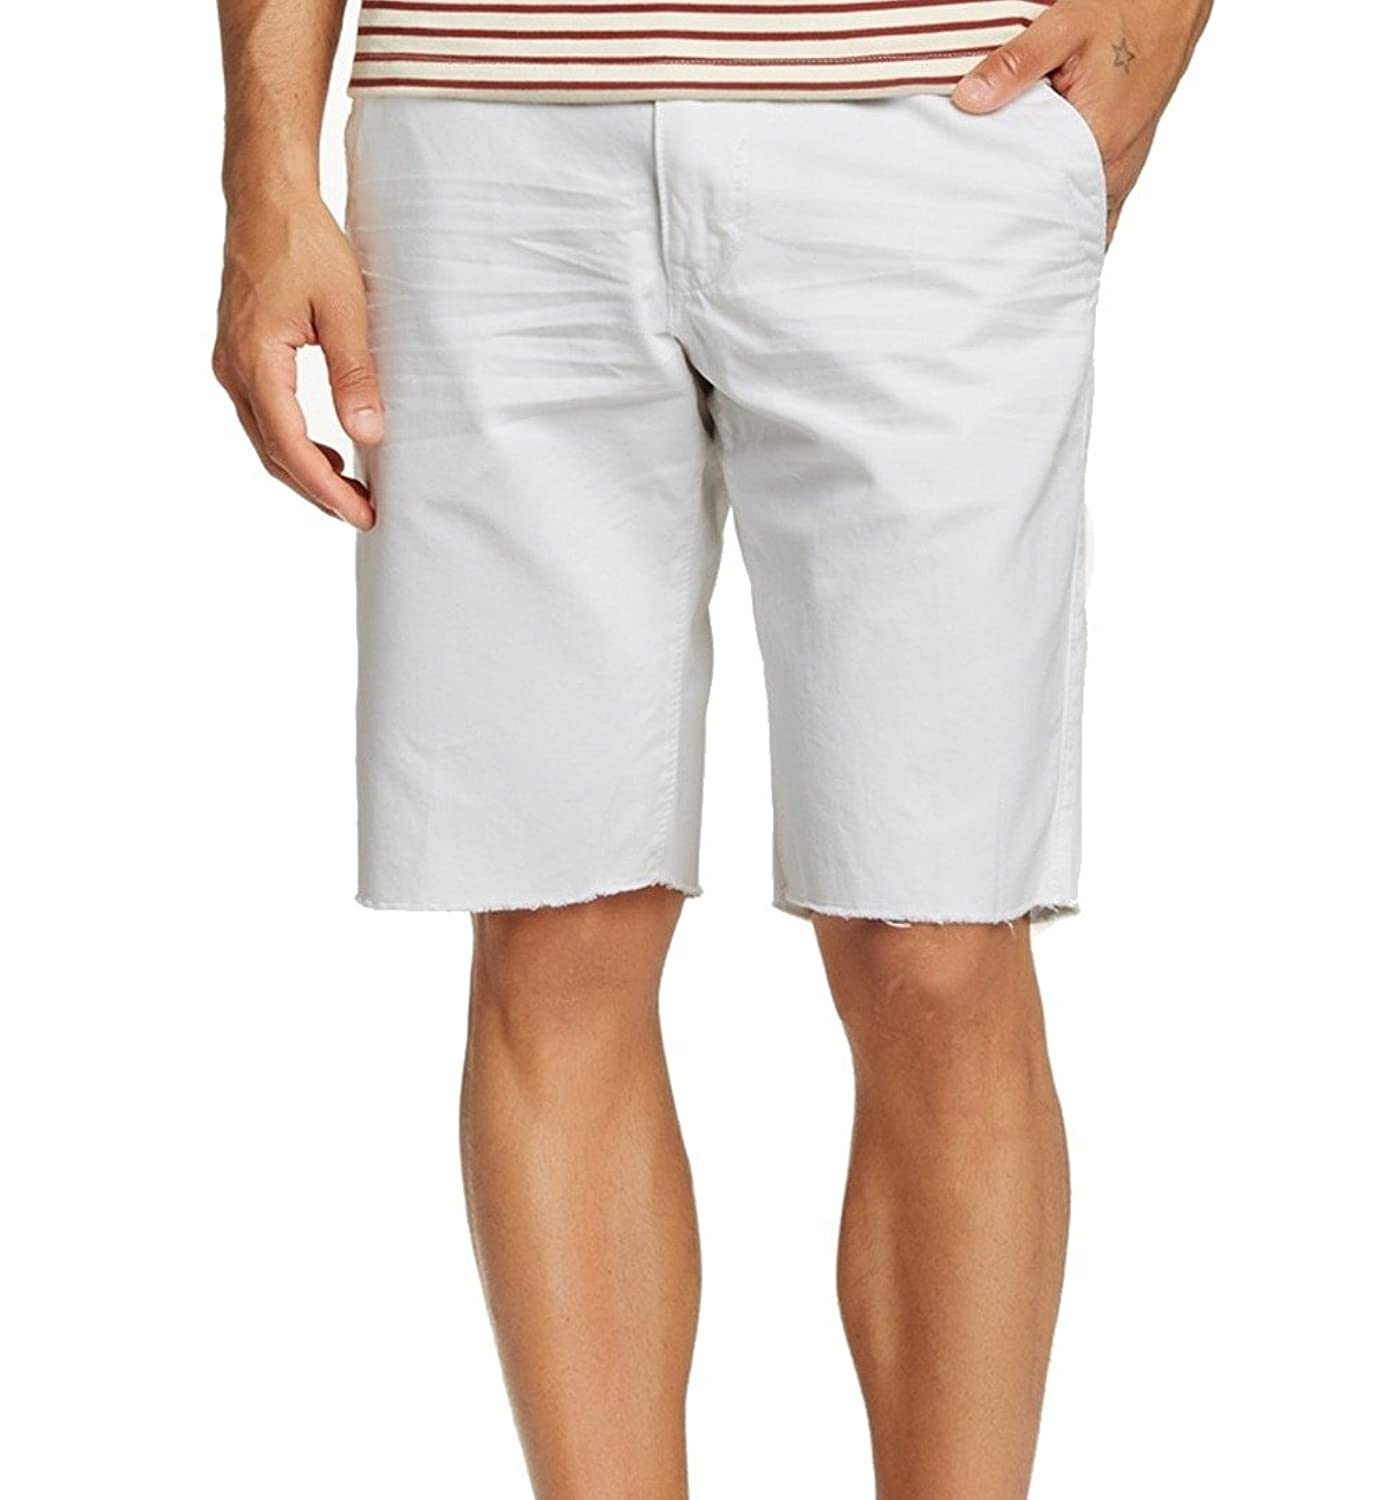 f29561fa216c UNION Bright Mens Frayed-Hem Flat Front Stretch Shorts White 38 new ...